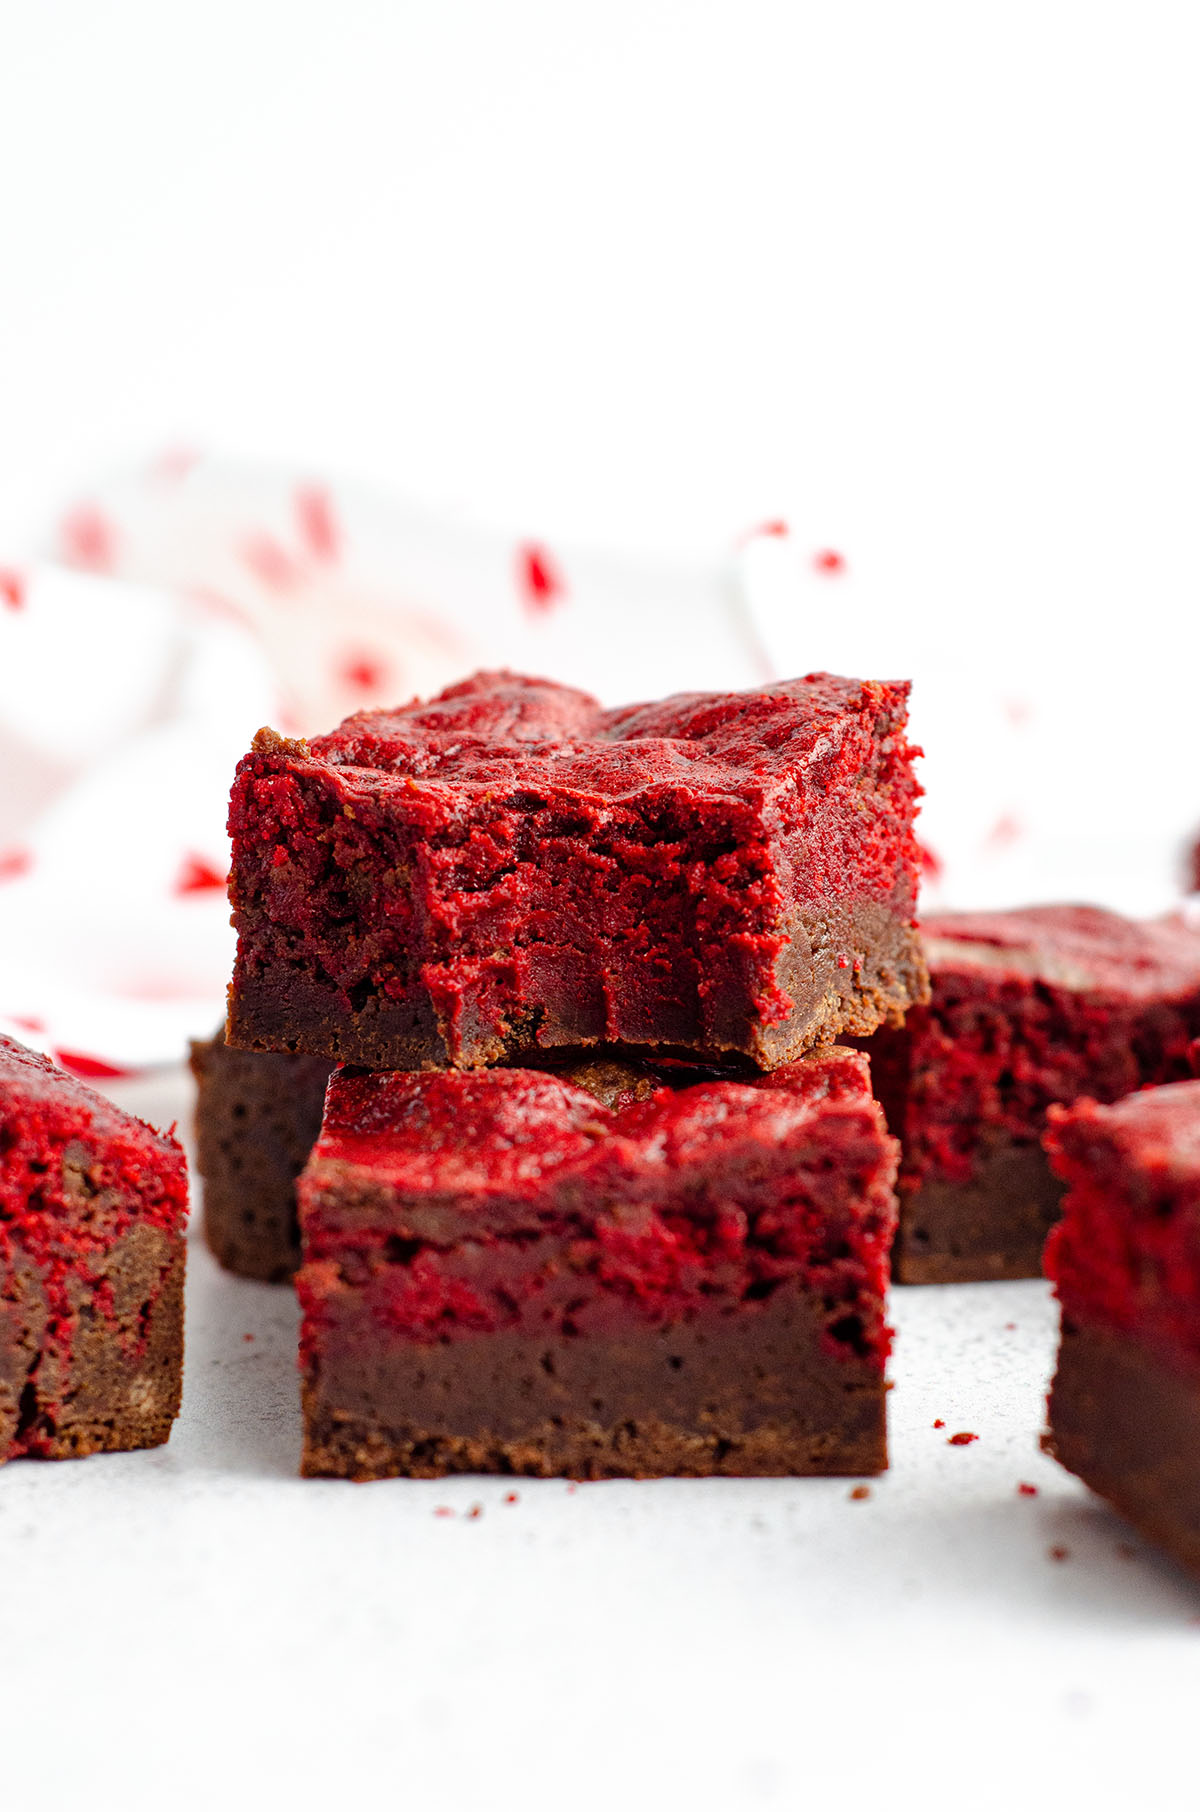 red velvet brownie with a bite taken out of it stacked on top of other red velvet brownies